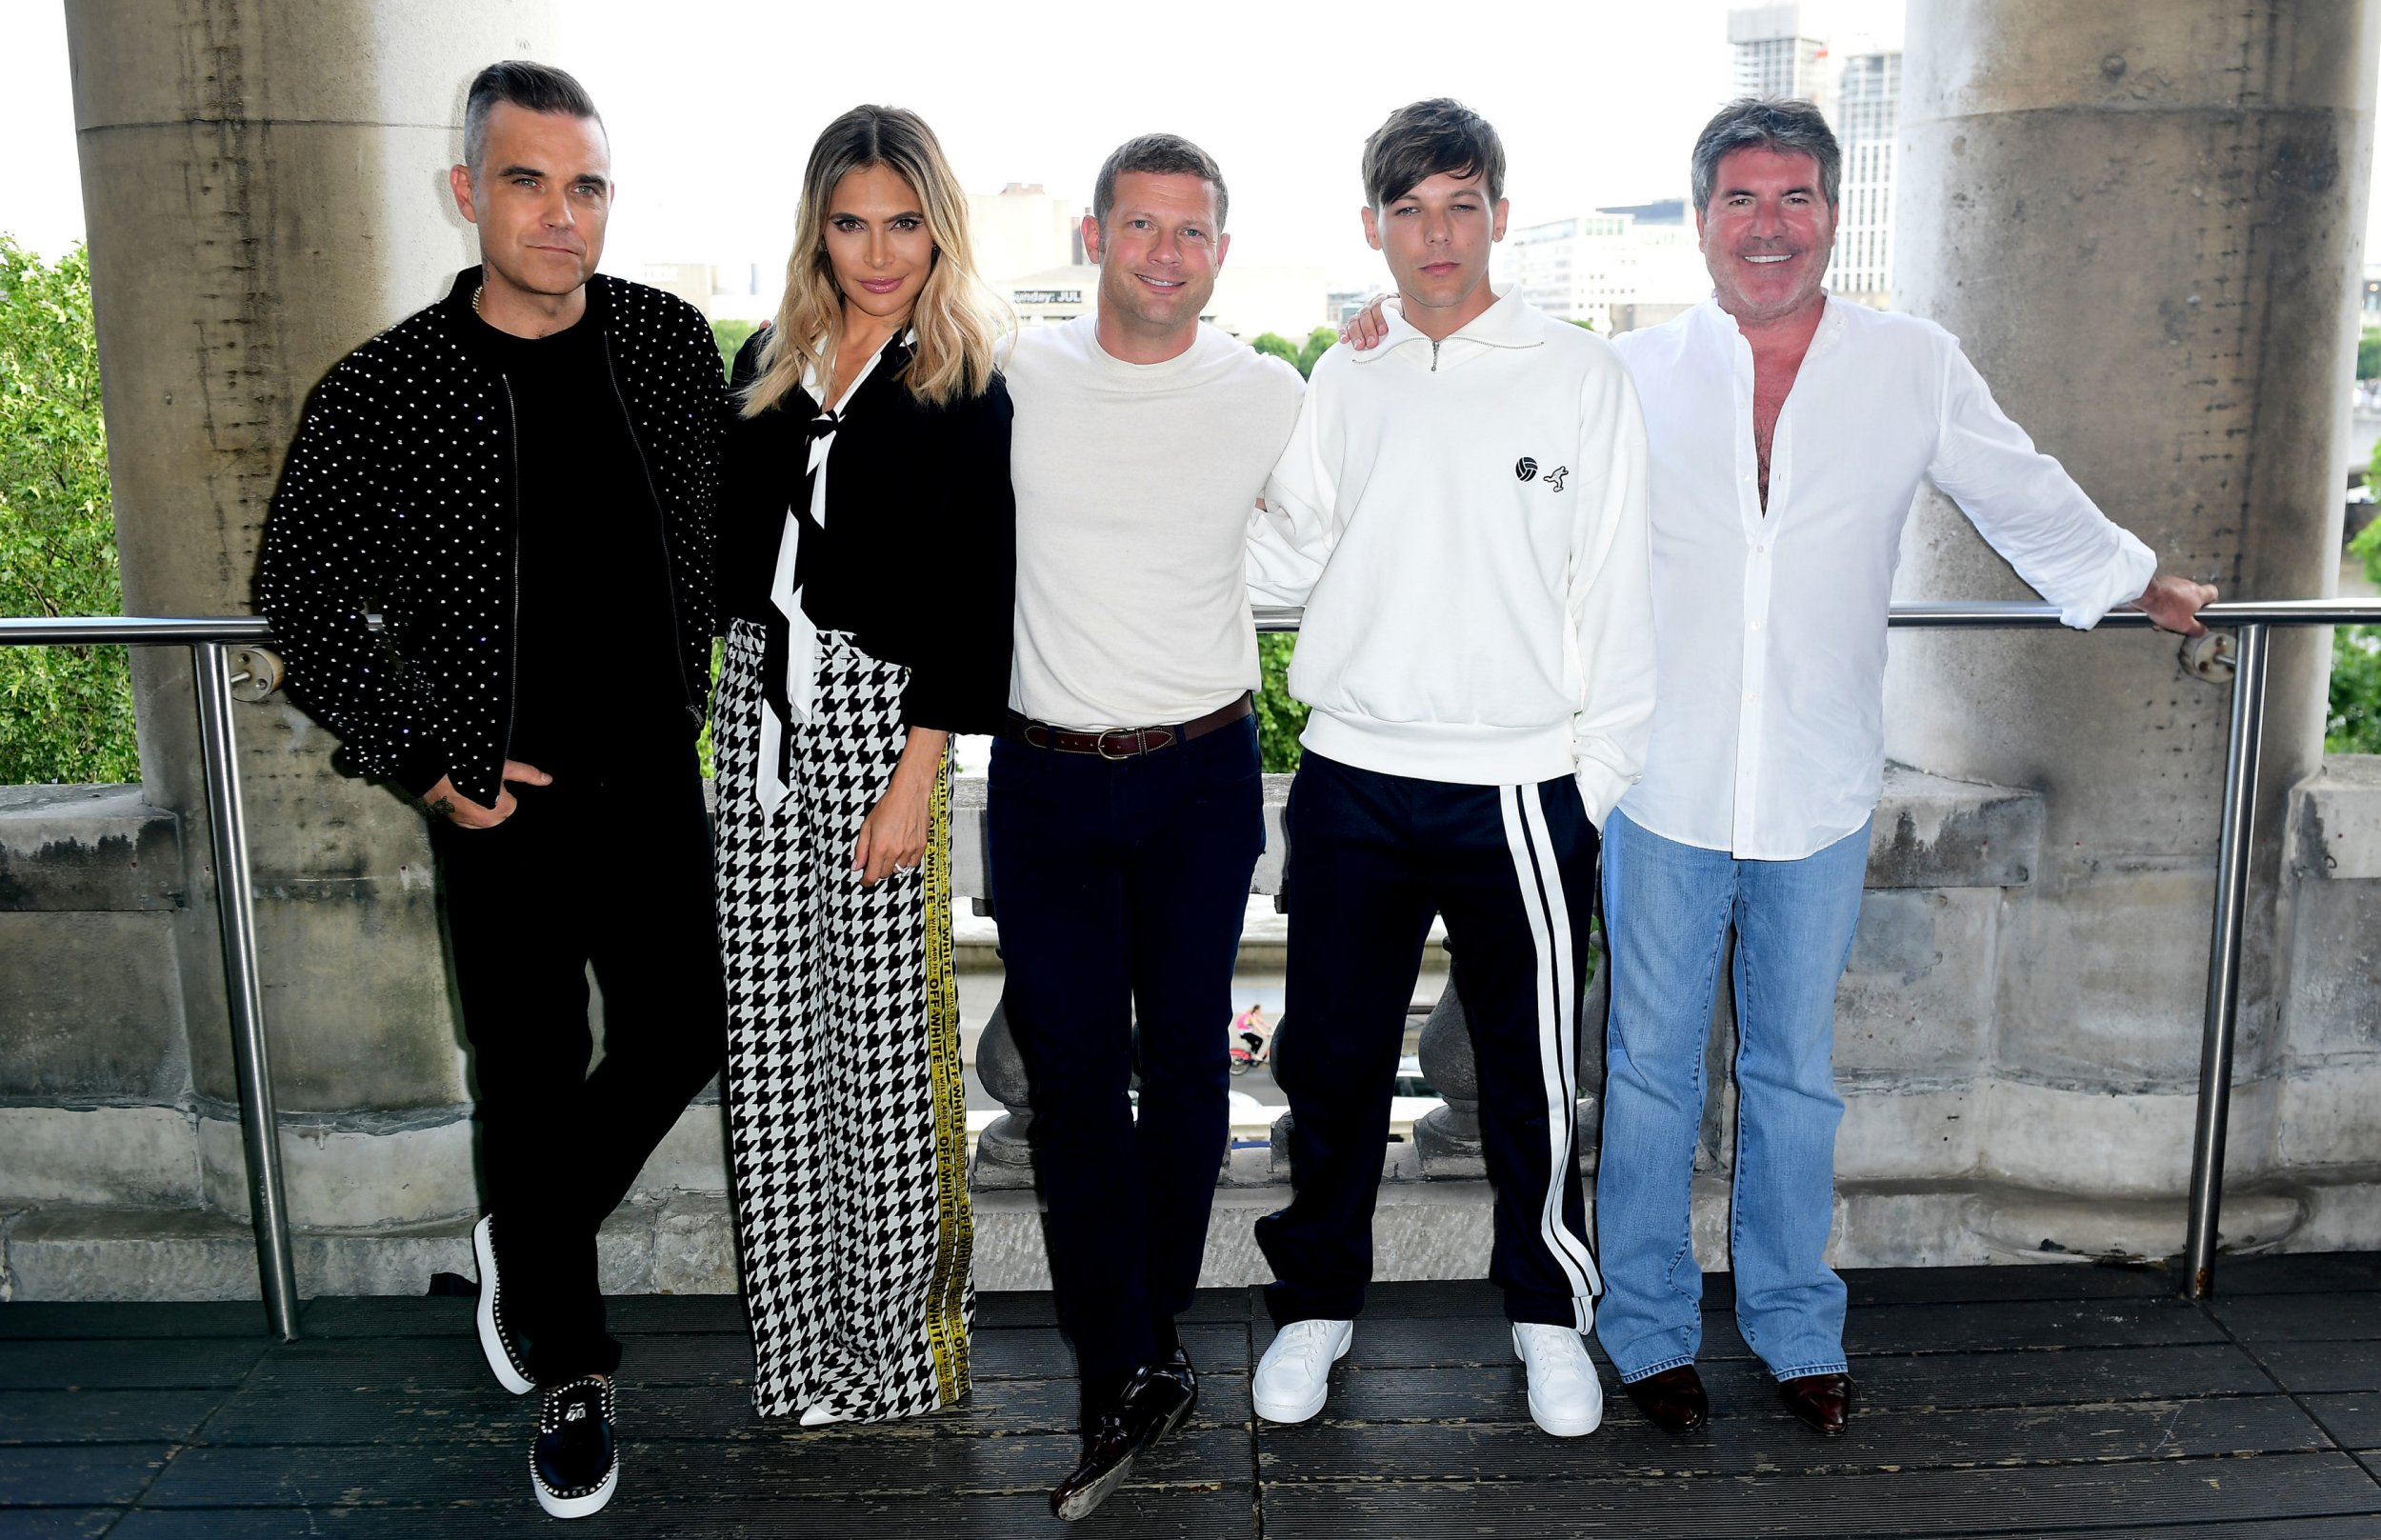 Robbie Williams, Ayda Field, Dermot O'Leary, Louis Tomlinson and Simon Cowell attending the X Factor photocall held at Somerset House, London. PRESS ASSOCIATION Photo. Picture date: Tuesday July 17, 2018. See PA story SHOWBIZ XFactor. Photo credit should read: Ian West/PA Wire.